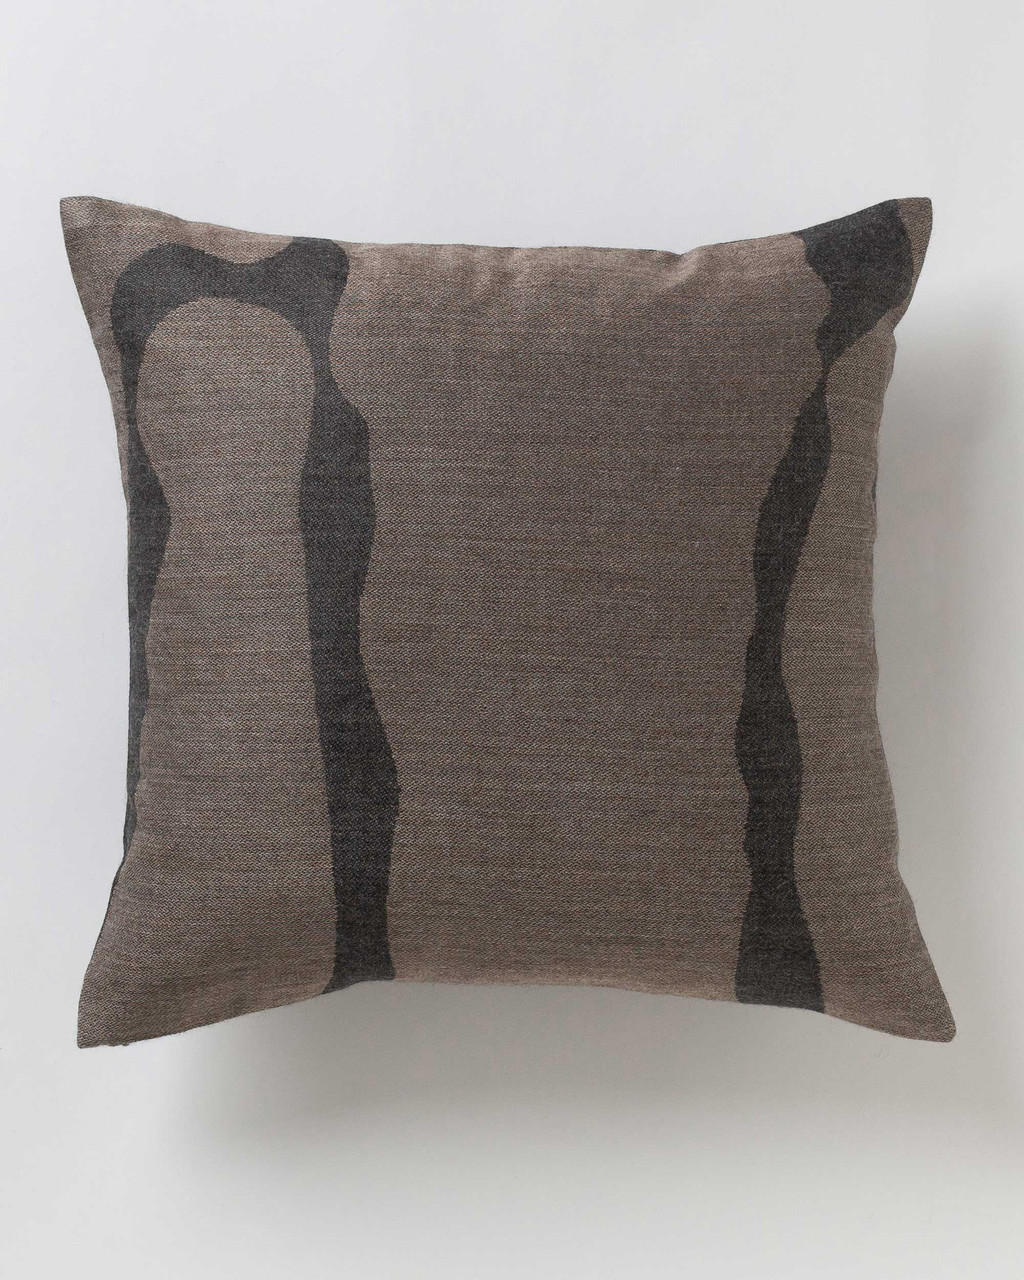 Alicia Adams Alpaca Zigby Pillow, alpaca pillow, alpaca throw pillow, alpaca decorative pillow, alpaca vs cashmere, taupe and charcoal grey alpaca throw pillow